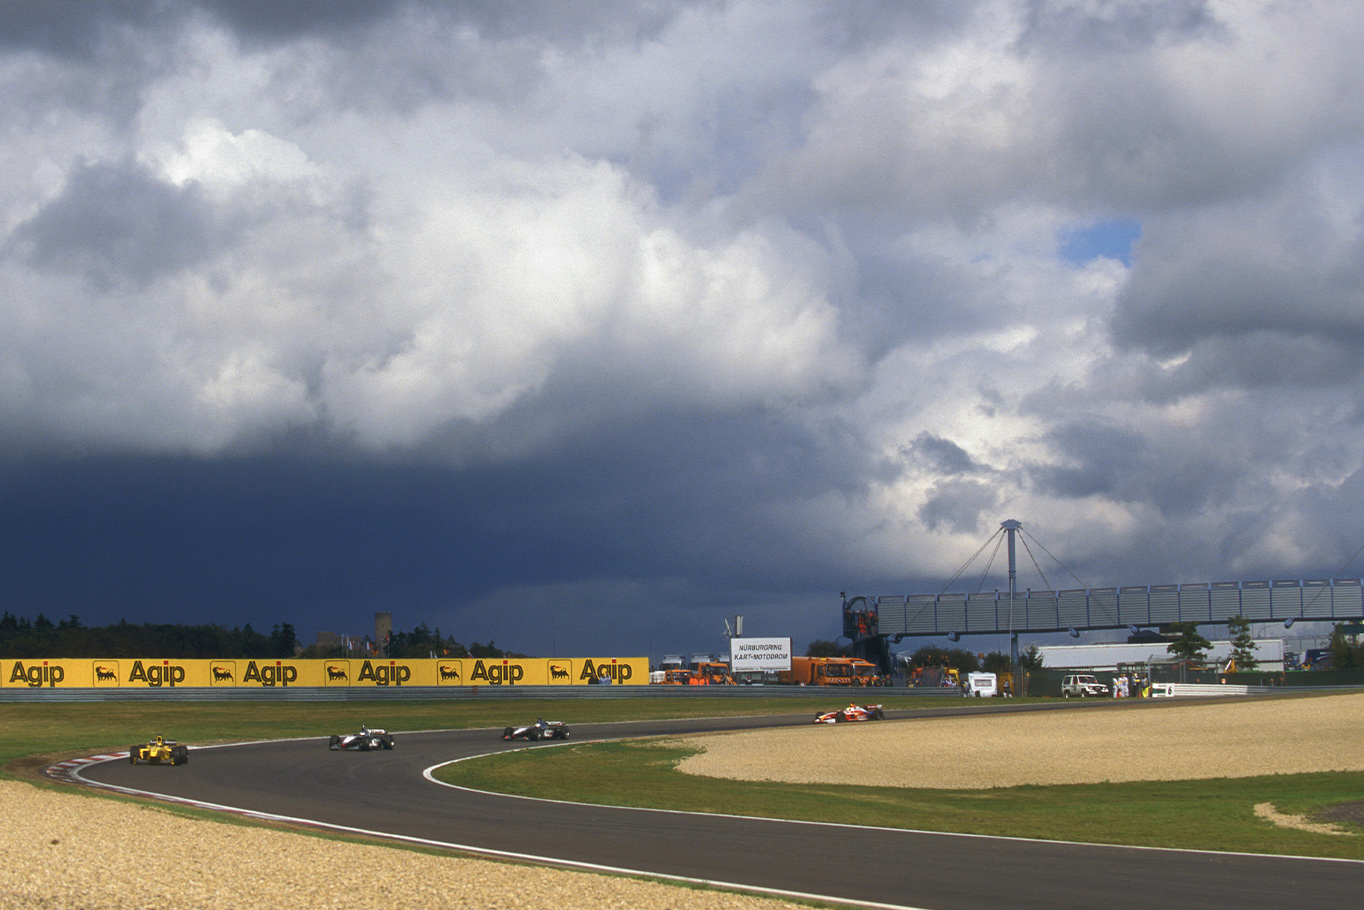 Dark clouds over the Nurbirgring at the start of the 1999 European Grand Prix